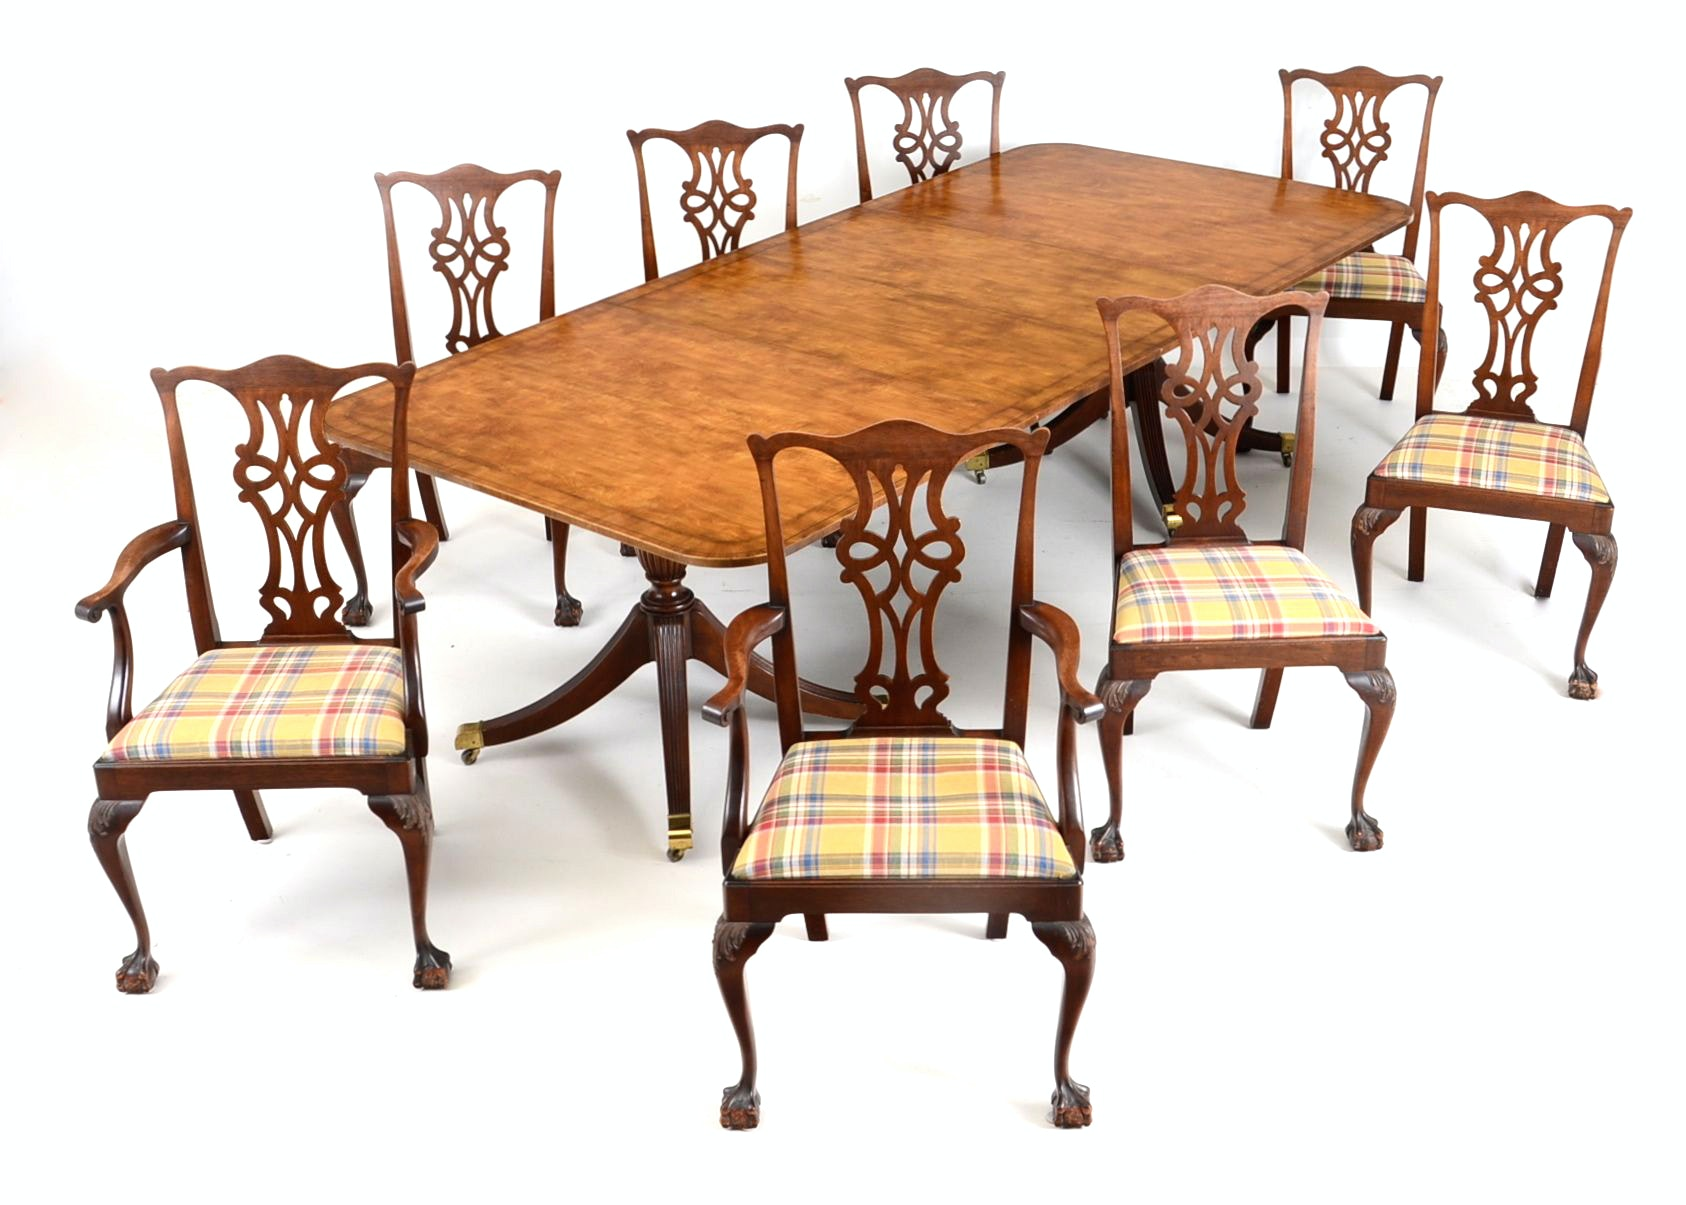 Maple Kitchen Table With Chair And Bench Ebth: Baker Dining Room Table With Eight Chairs